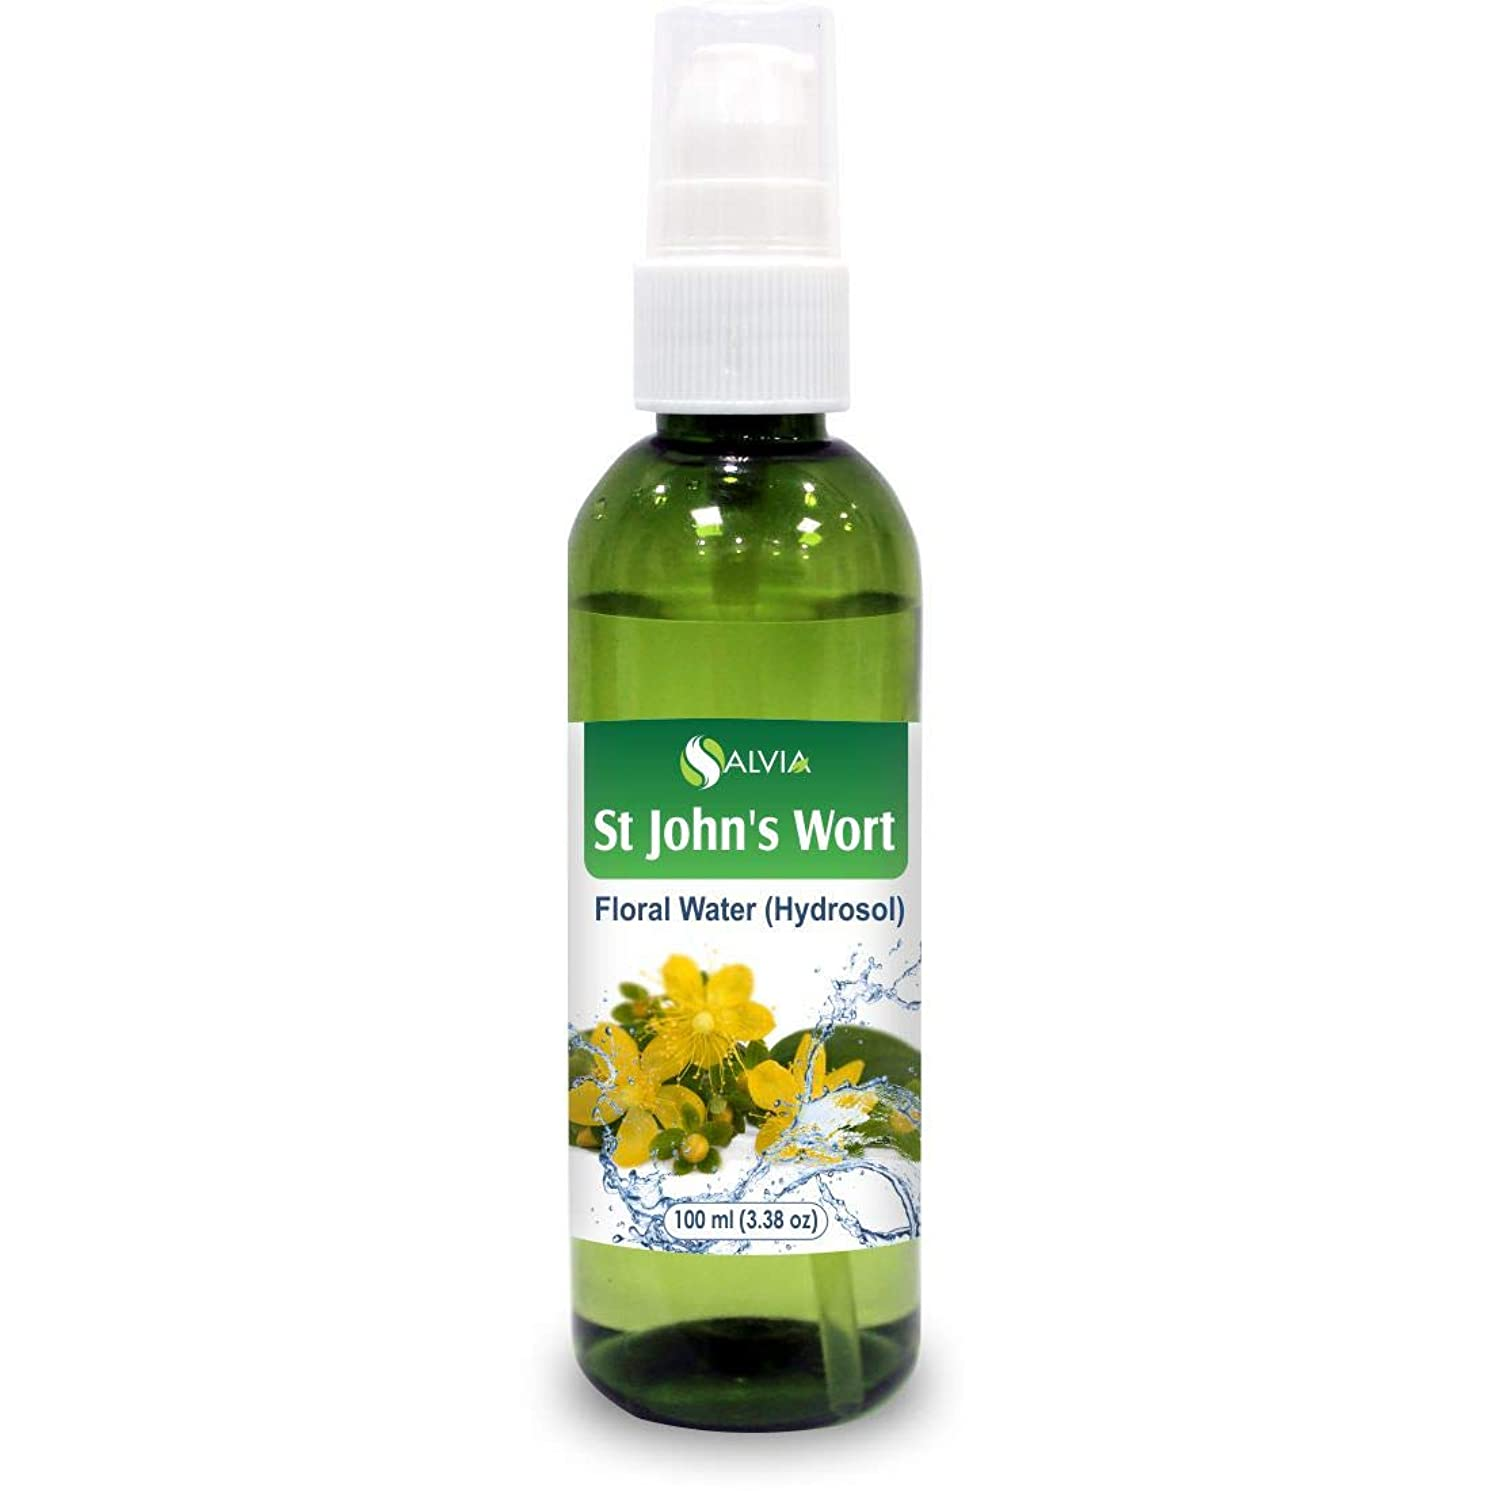 流す徴収早熟St John's Wort Floral Water 100ml (Hydrosol) 100% Pure And Natural